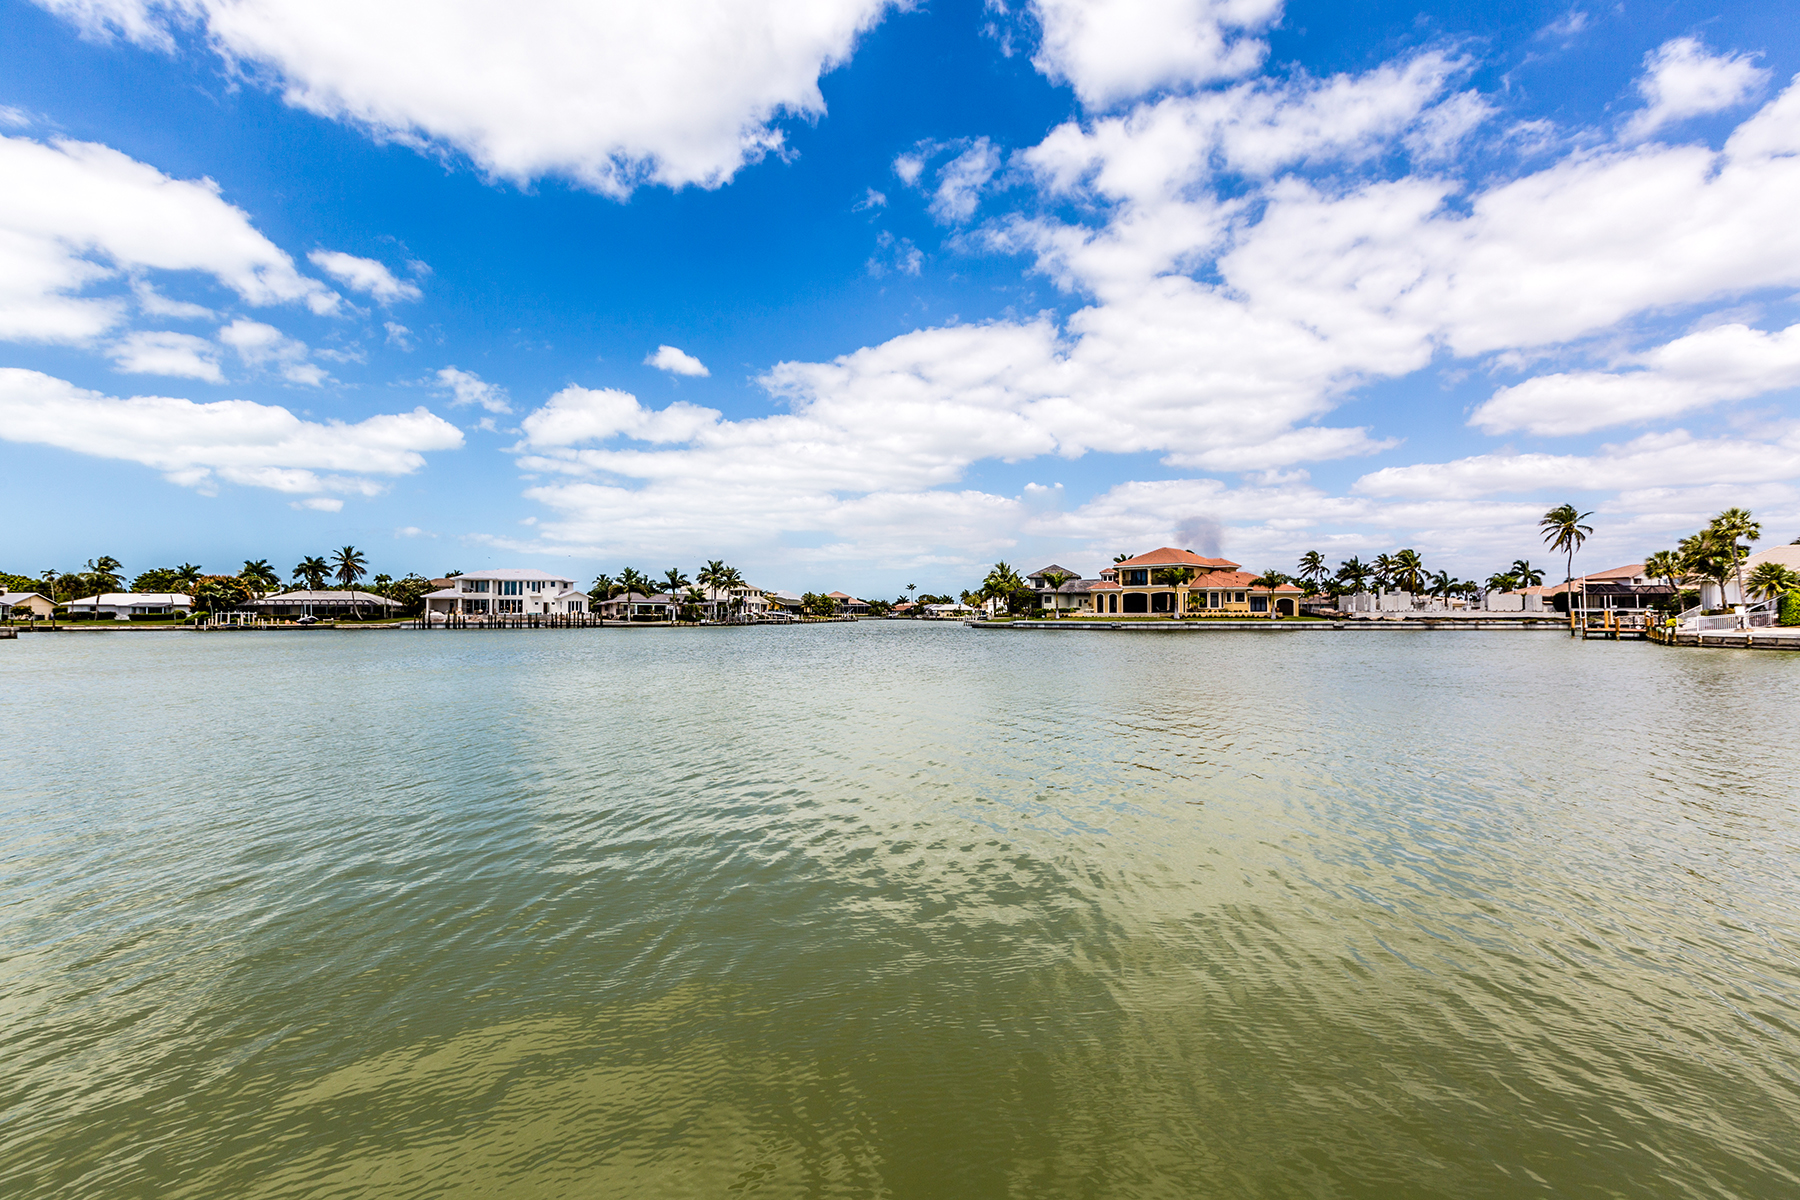 Land for Sale at MARCO ISLAND - TARPON COURT 490 Tarpon Ct Marco Island, Florida, 34145 United States